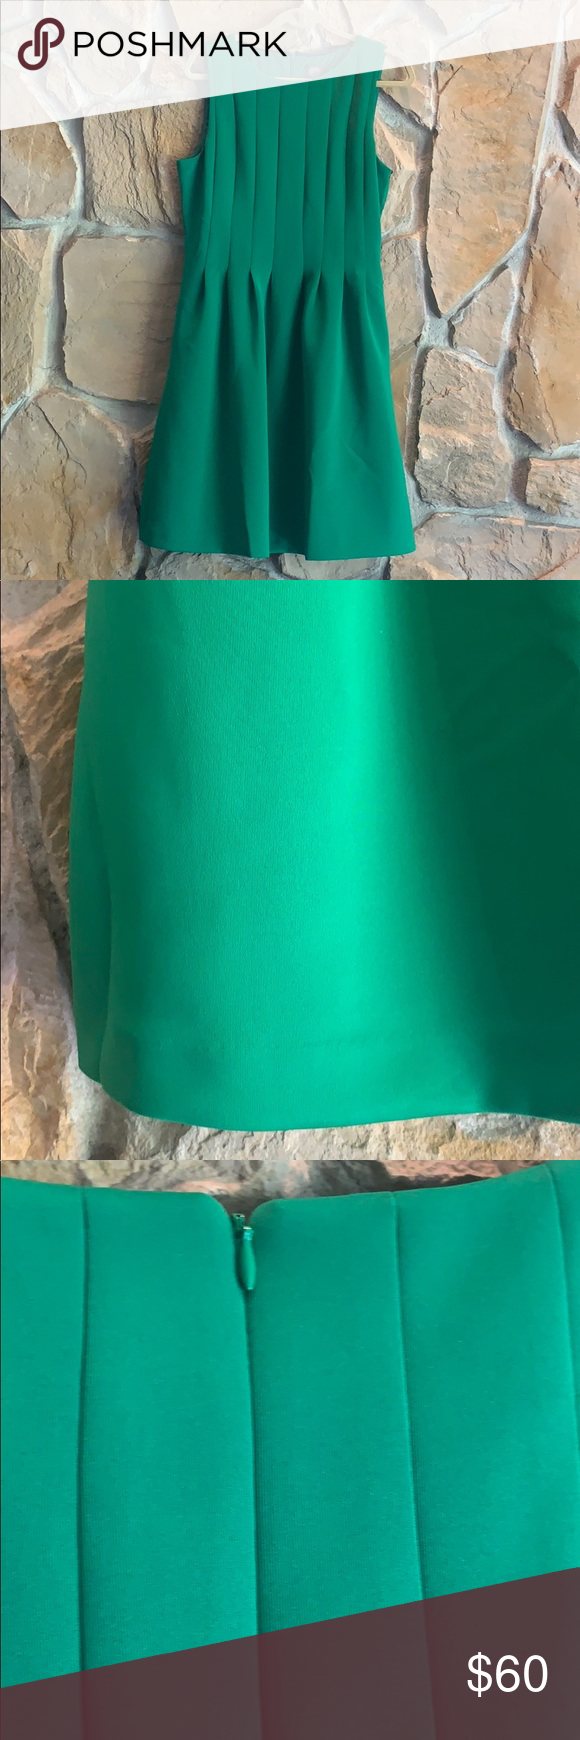 Hp 5 27 Vince Camuto Kelly Green Spring Dress Green Spring Dresses Clothes Design Fashion [ 1740 x 580 Pixel ]